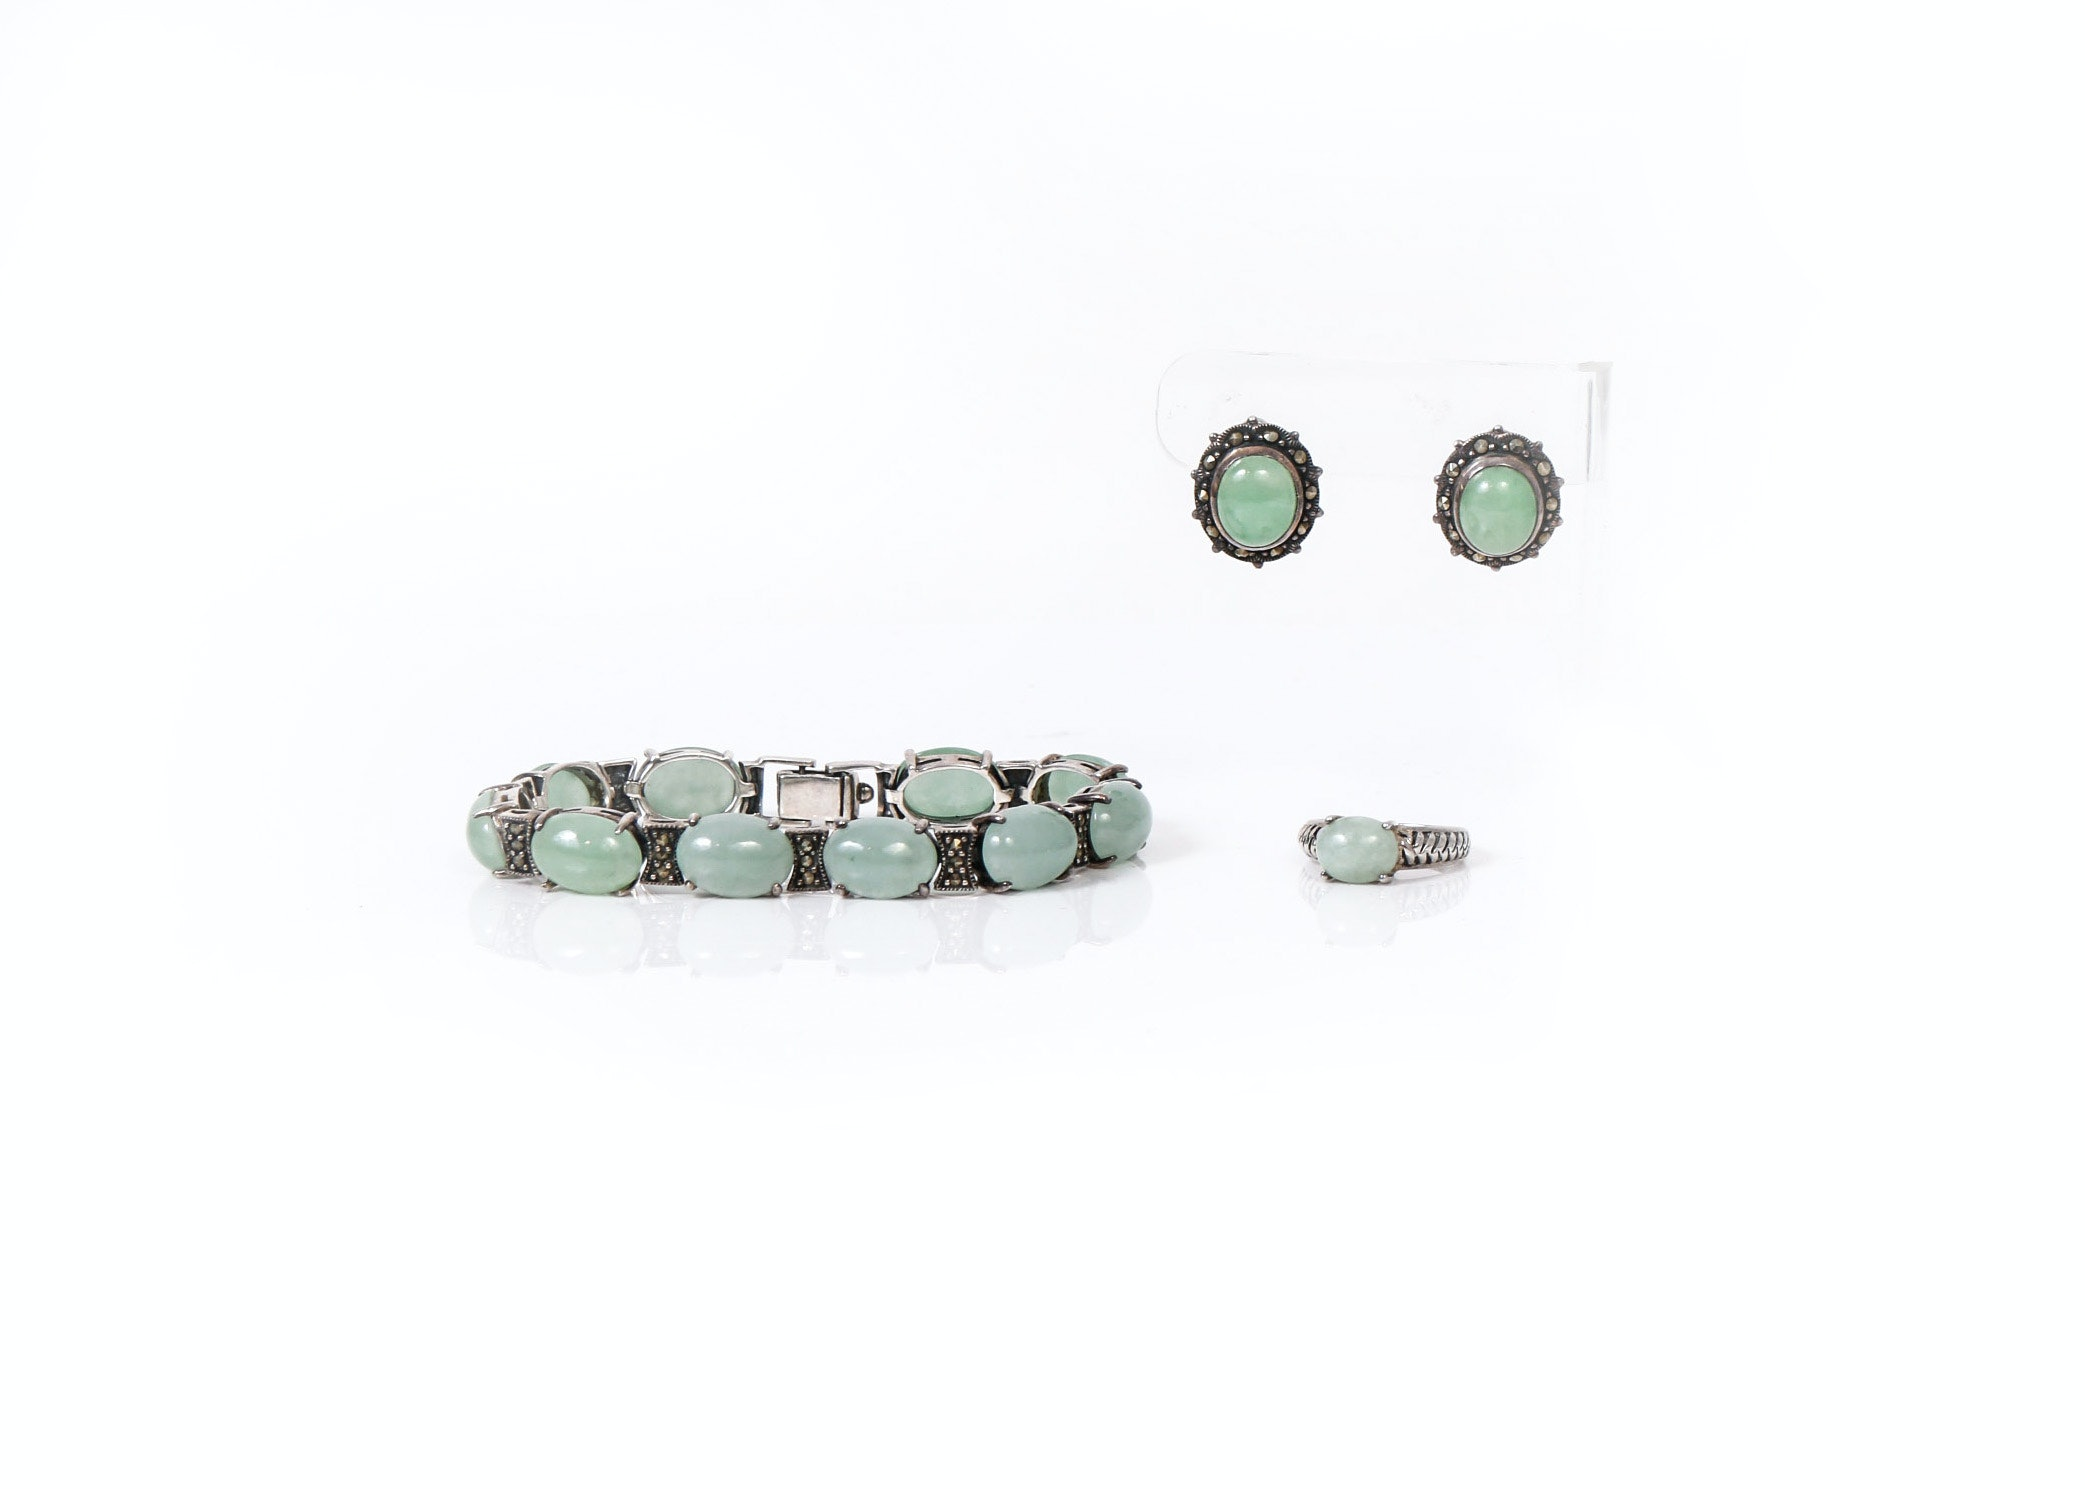 Sterling Silver and Jade Bracelet, Ring, and Earring Set